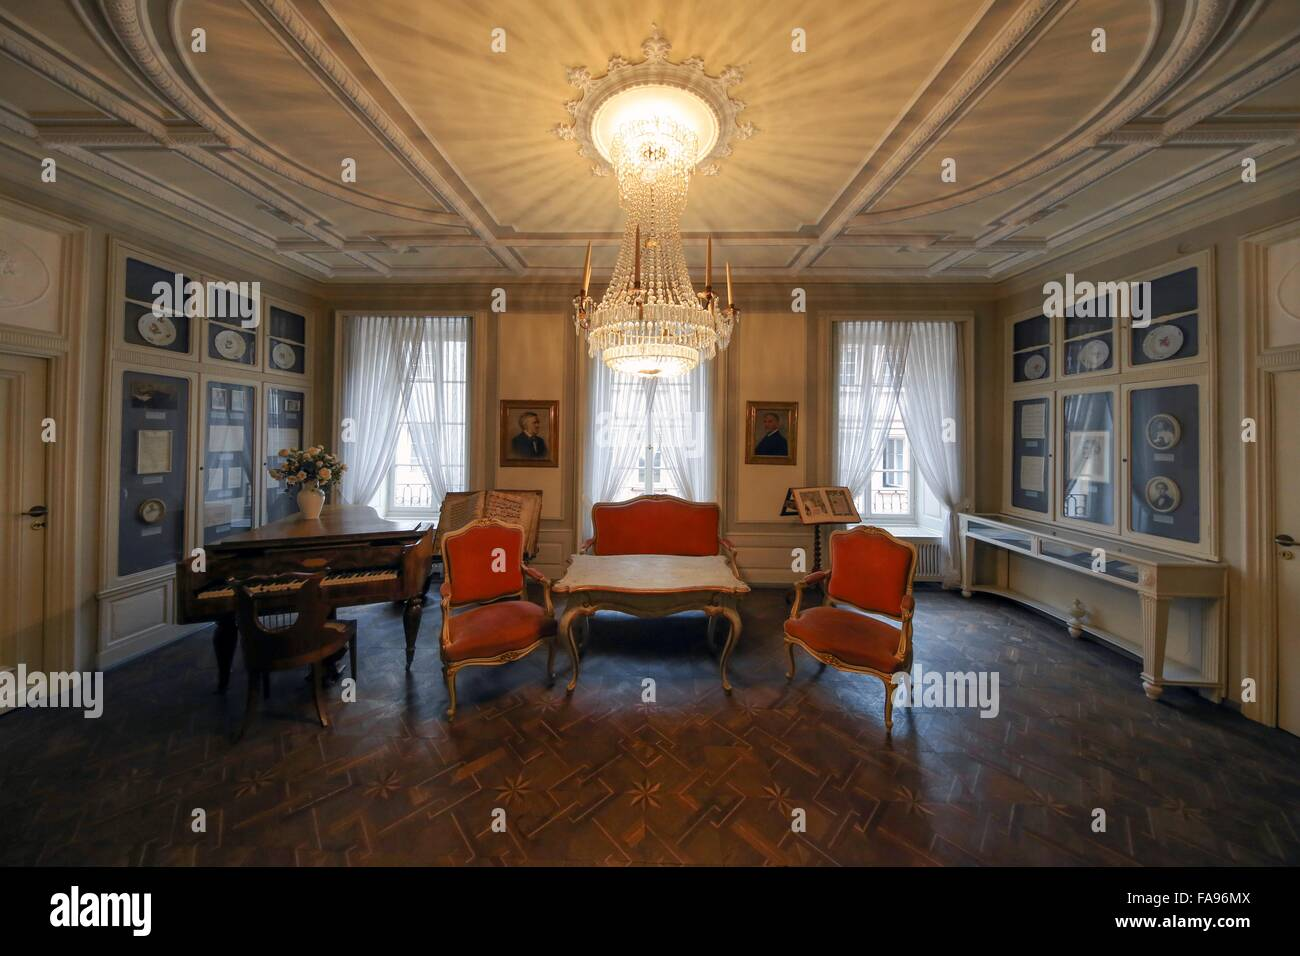 Interior Design For Wagner Living Best Choice Of Interior View Of The